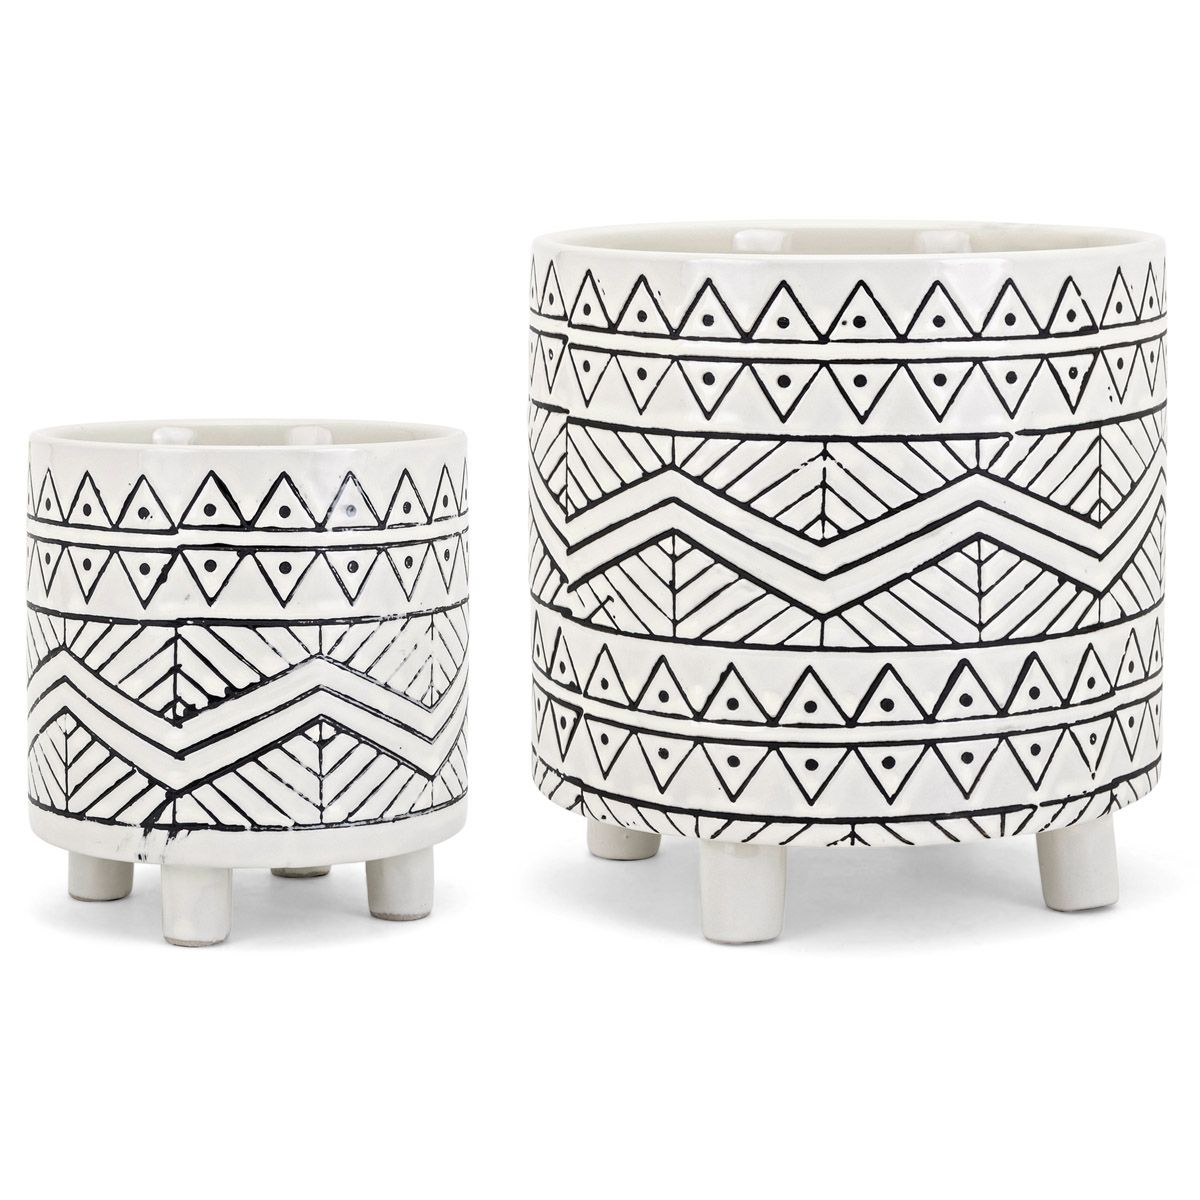 Warrior Lines Planters - Set of 2